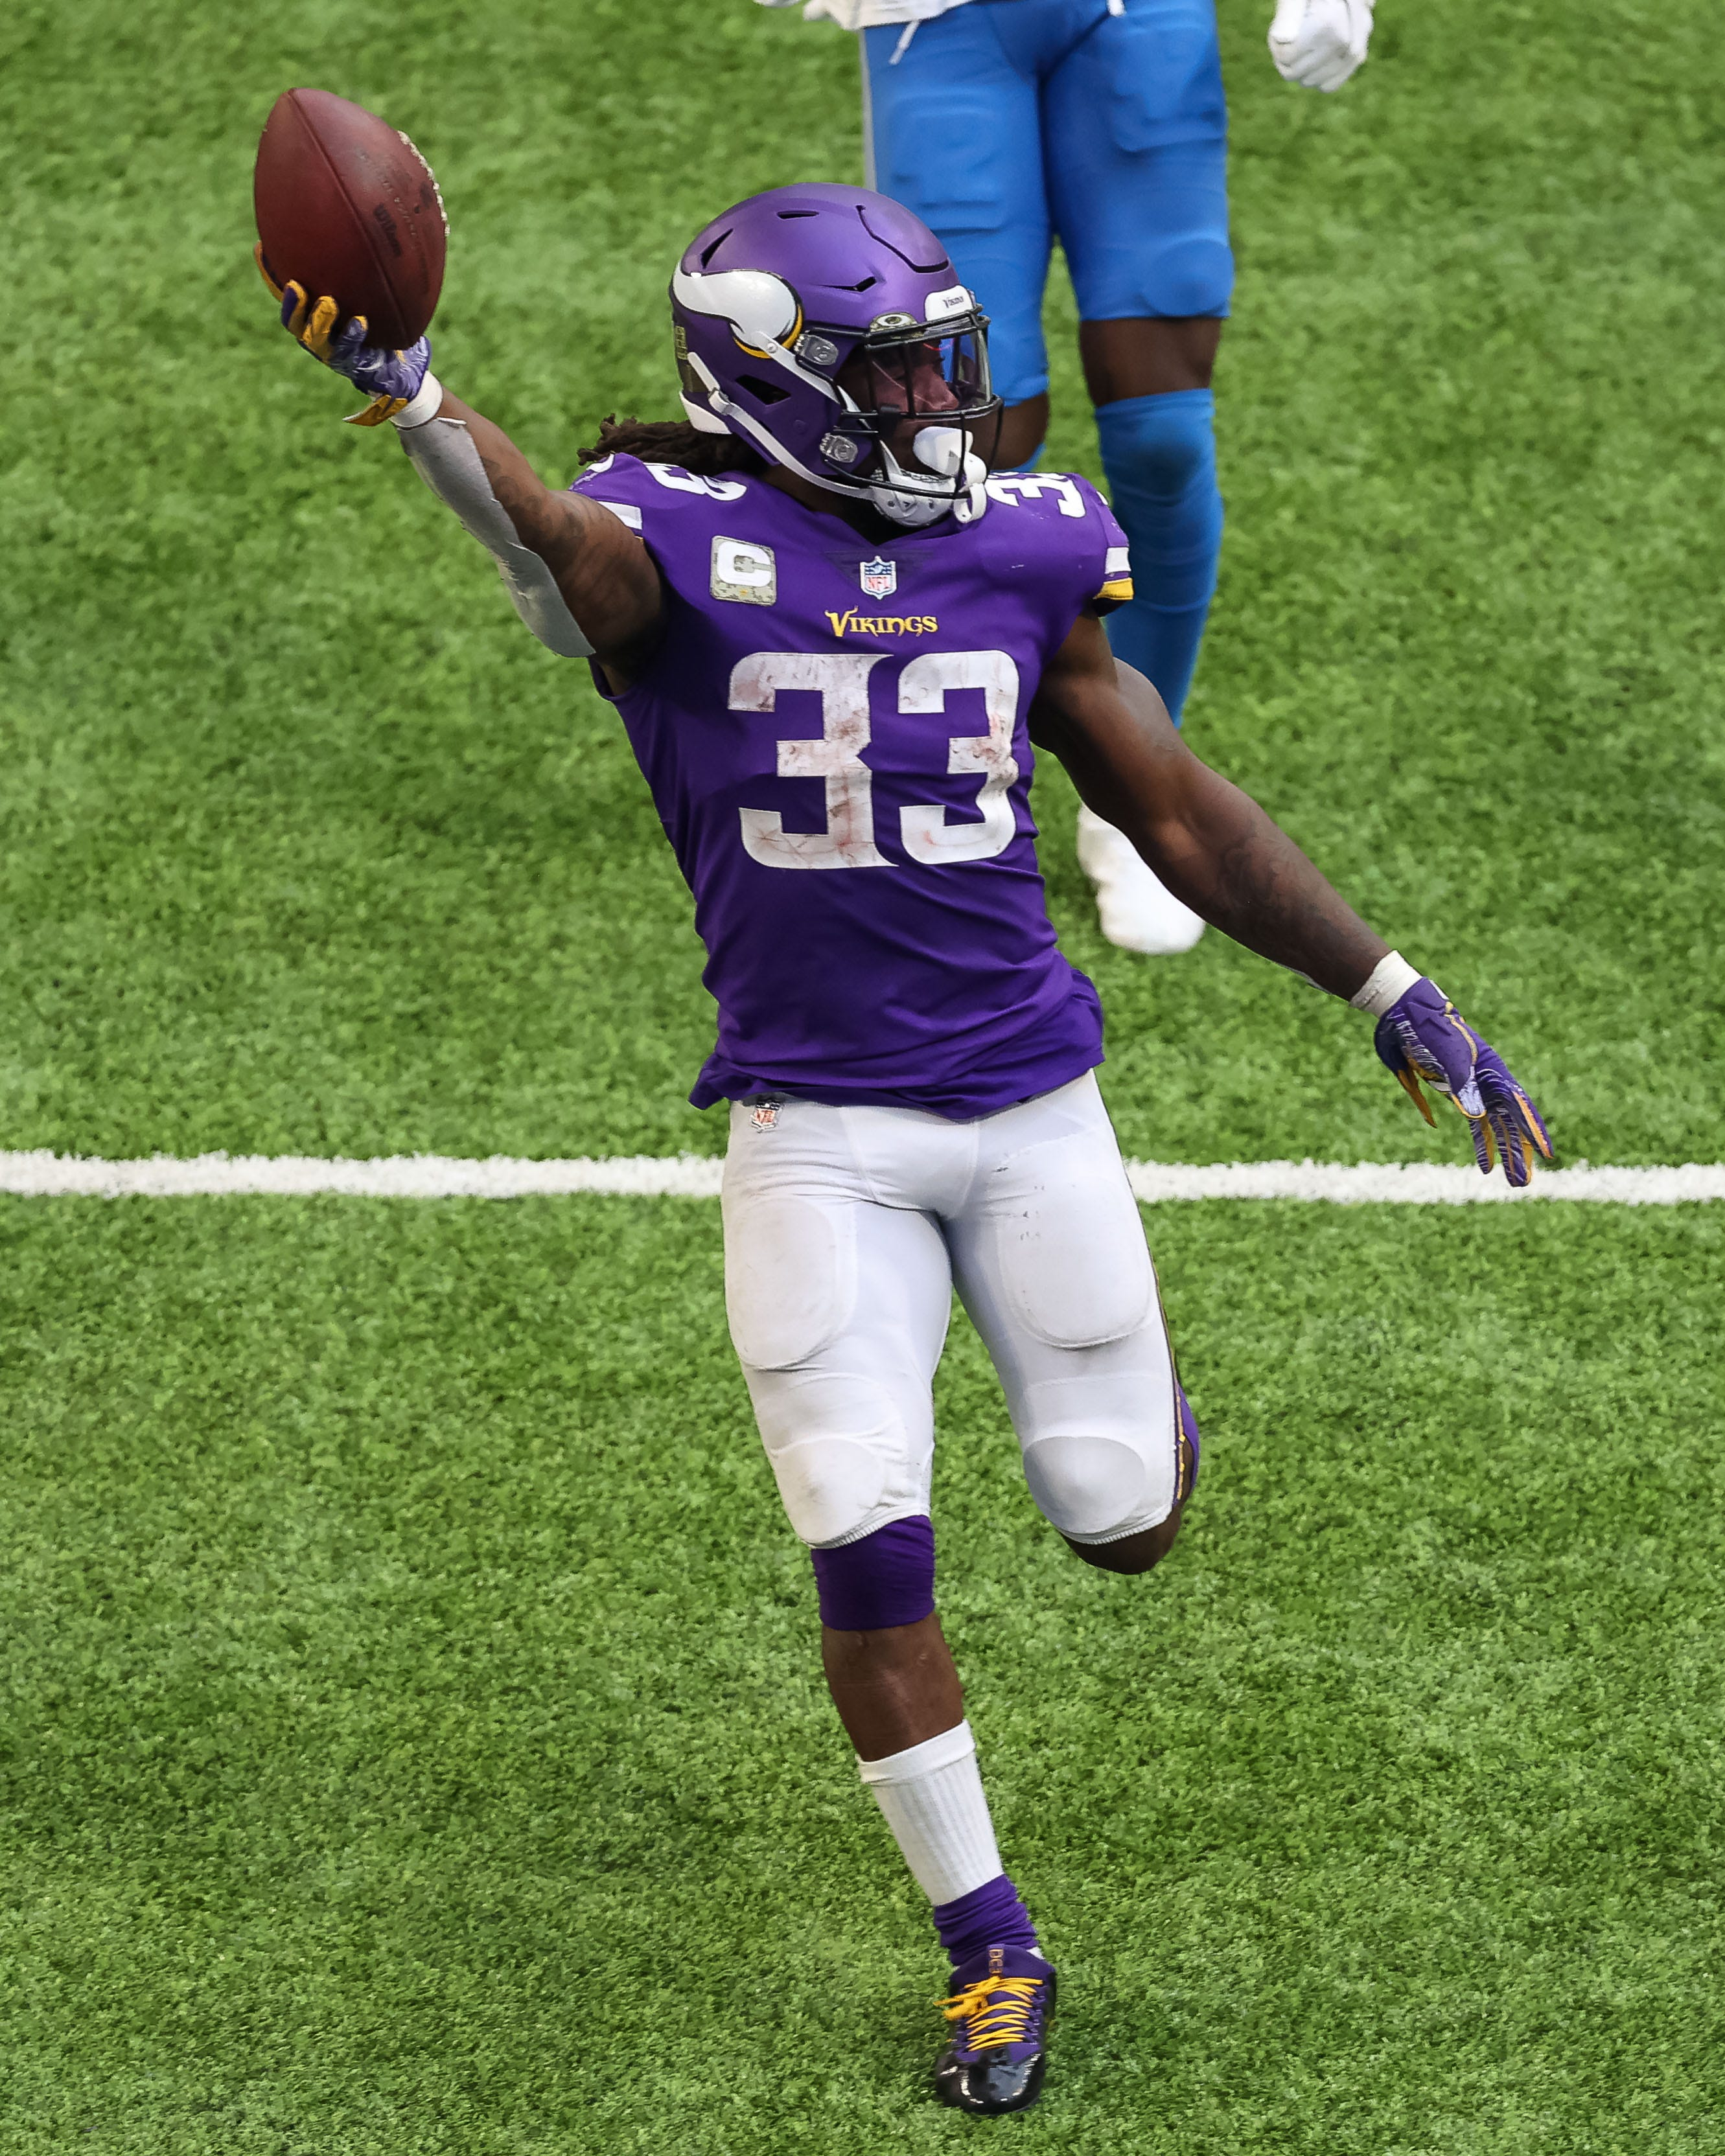 Opinion: Red-hot Vikings star Dalvin Cook better be ready for major test: Bears' defense